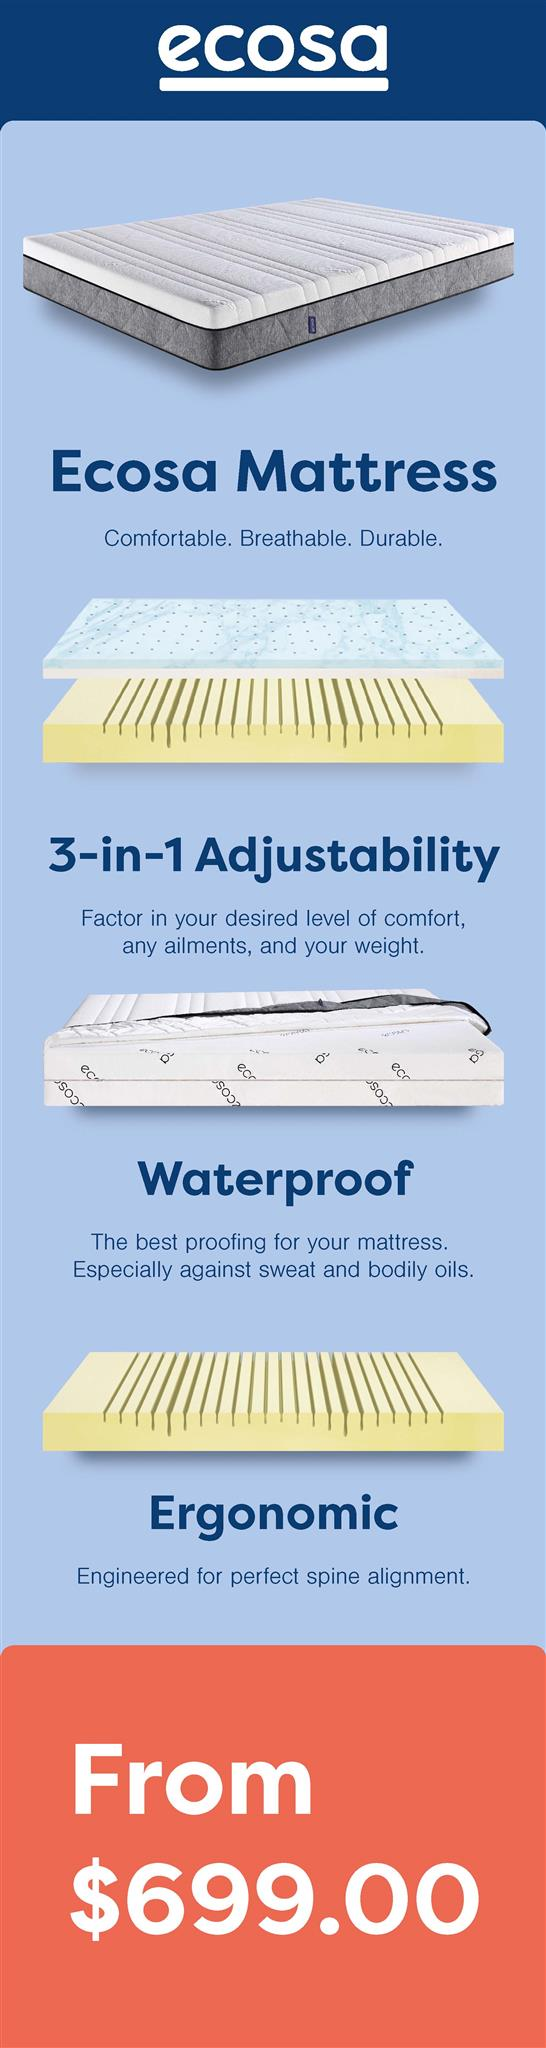 ecosa mattress phone number